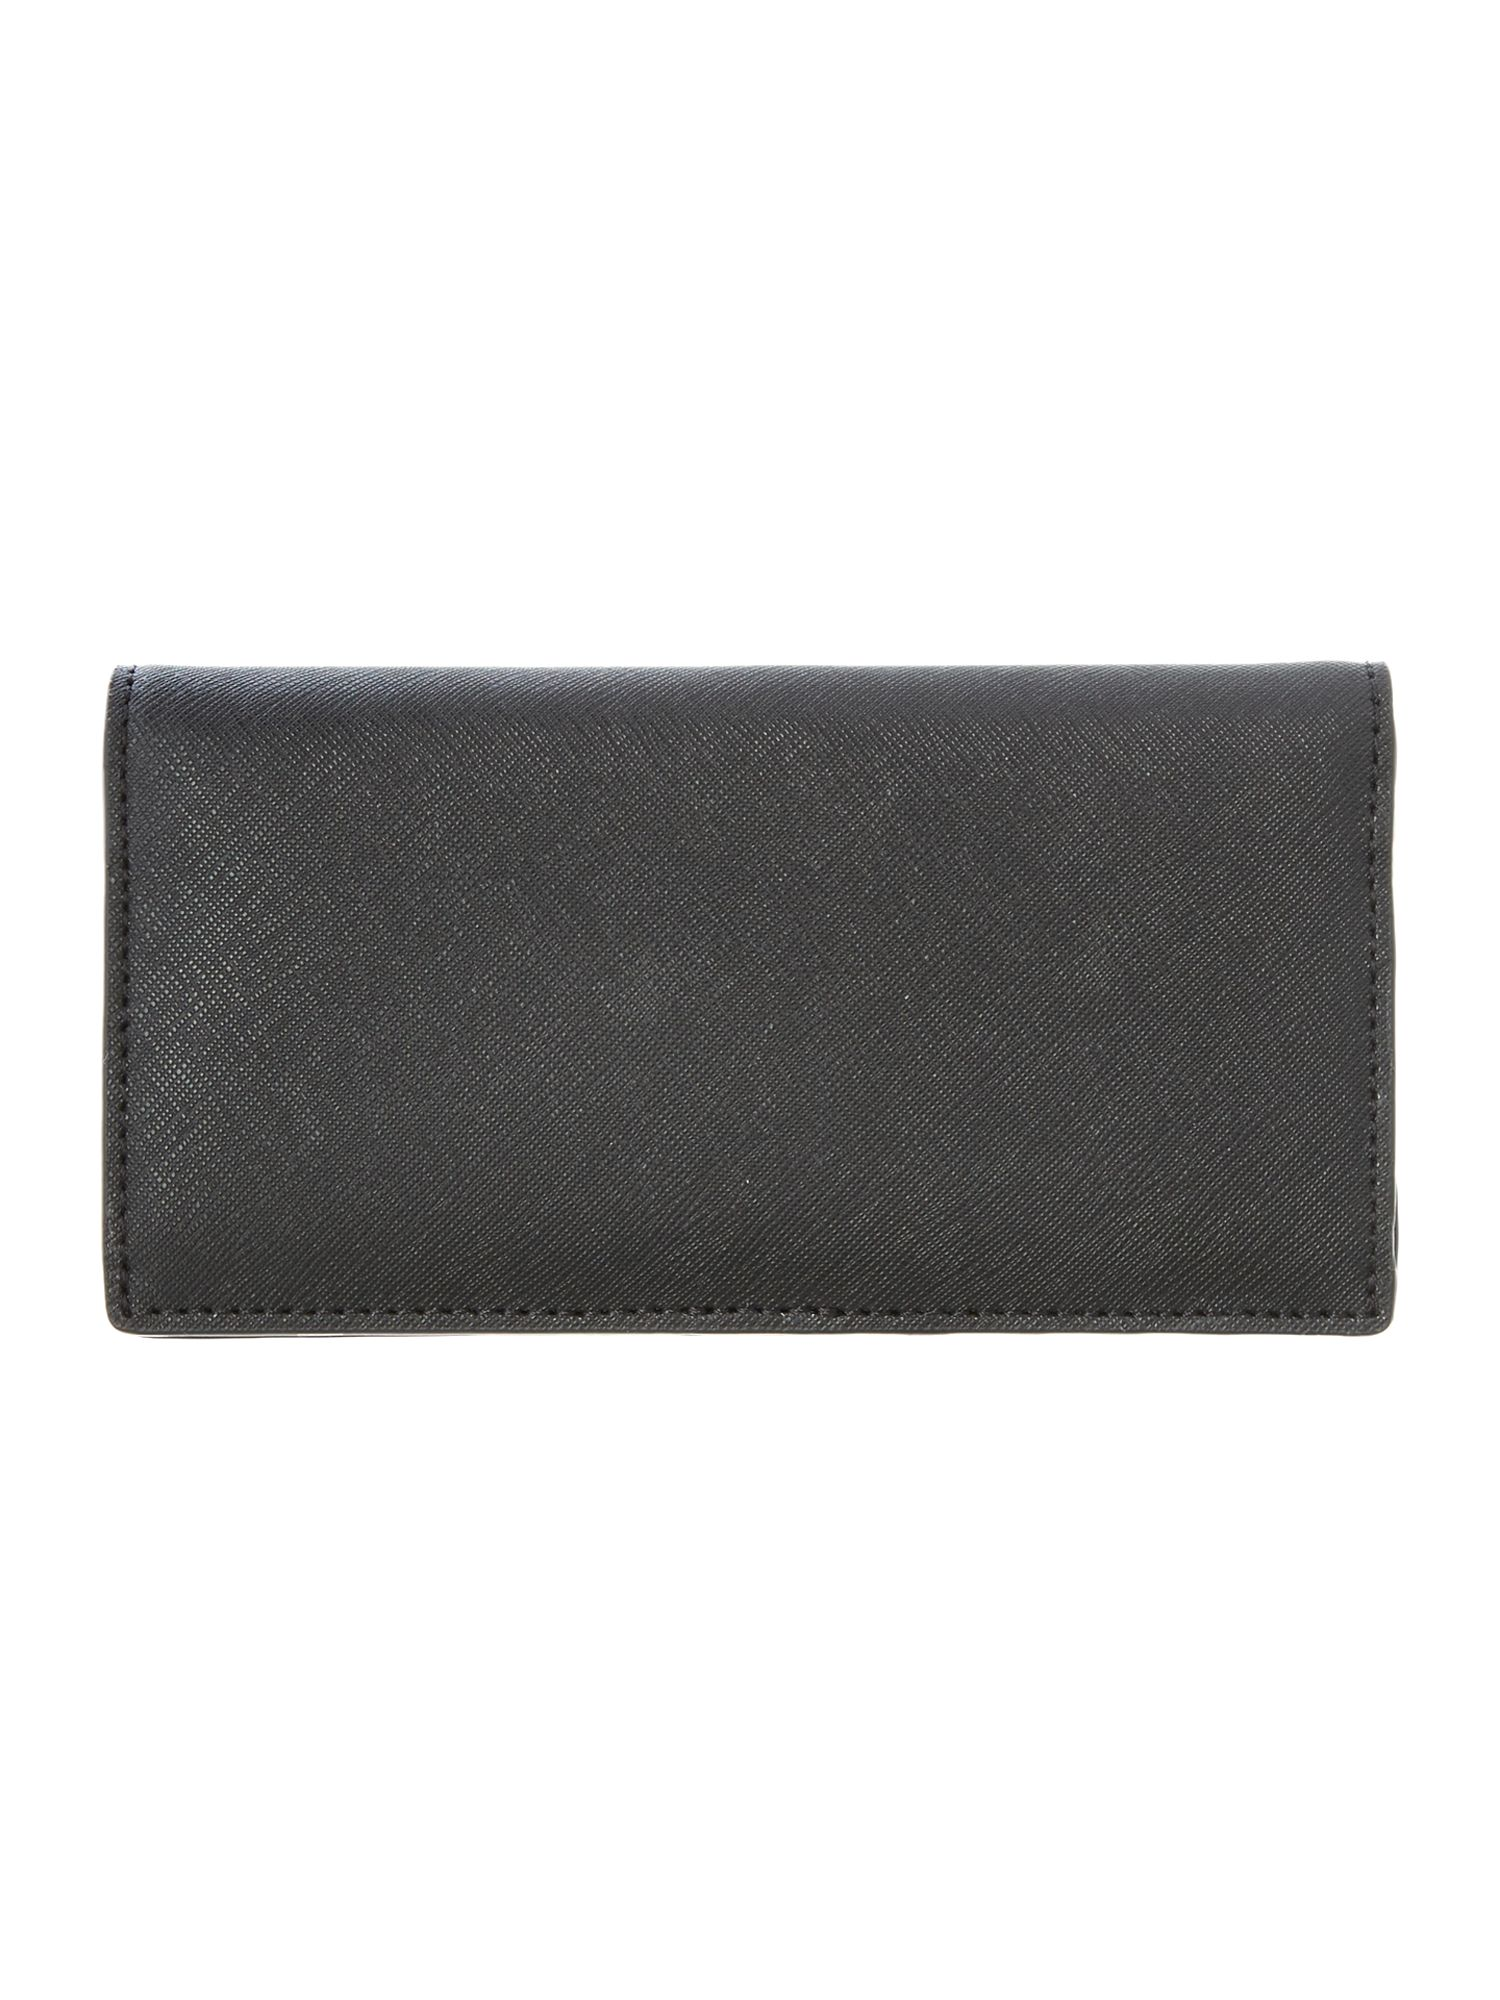 Jet Set Travel black large wallet